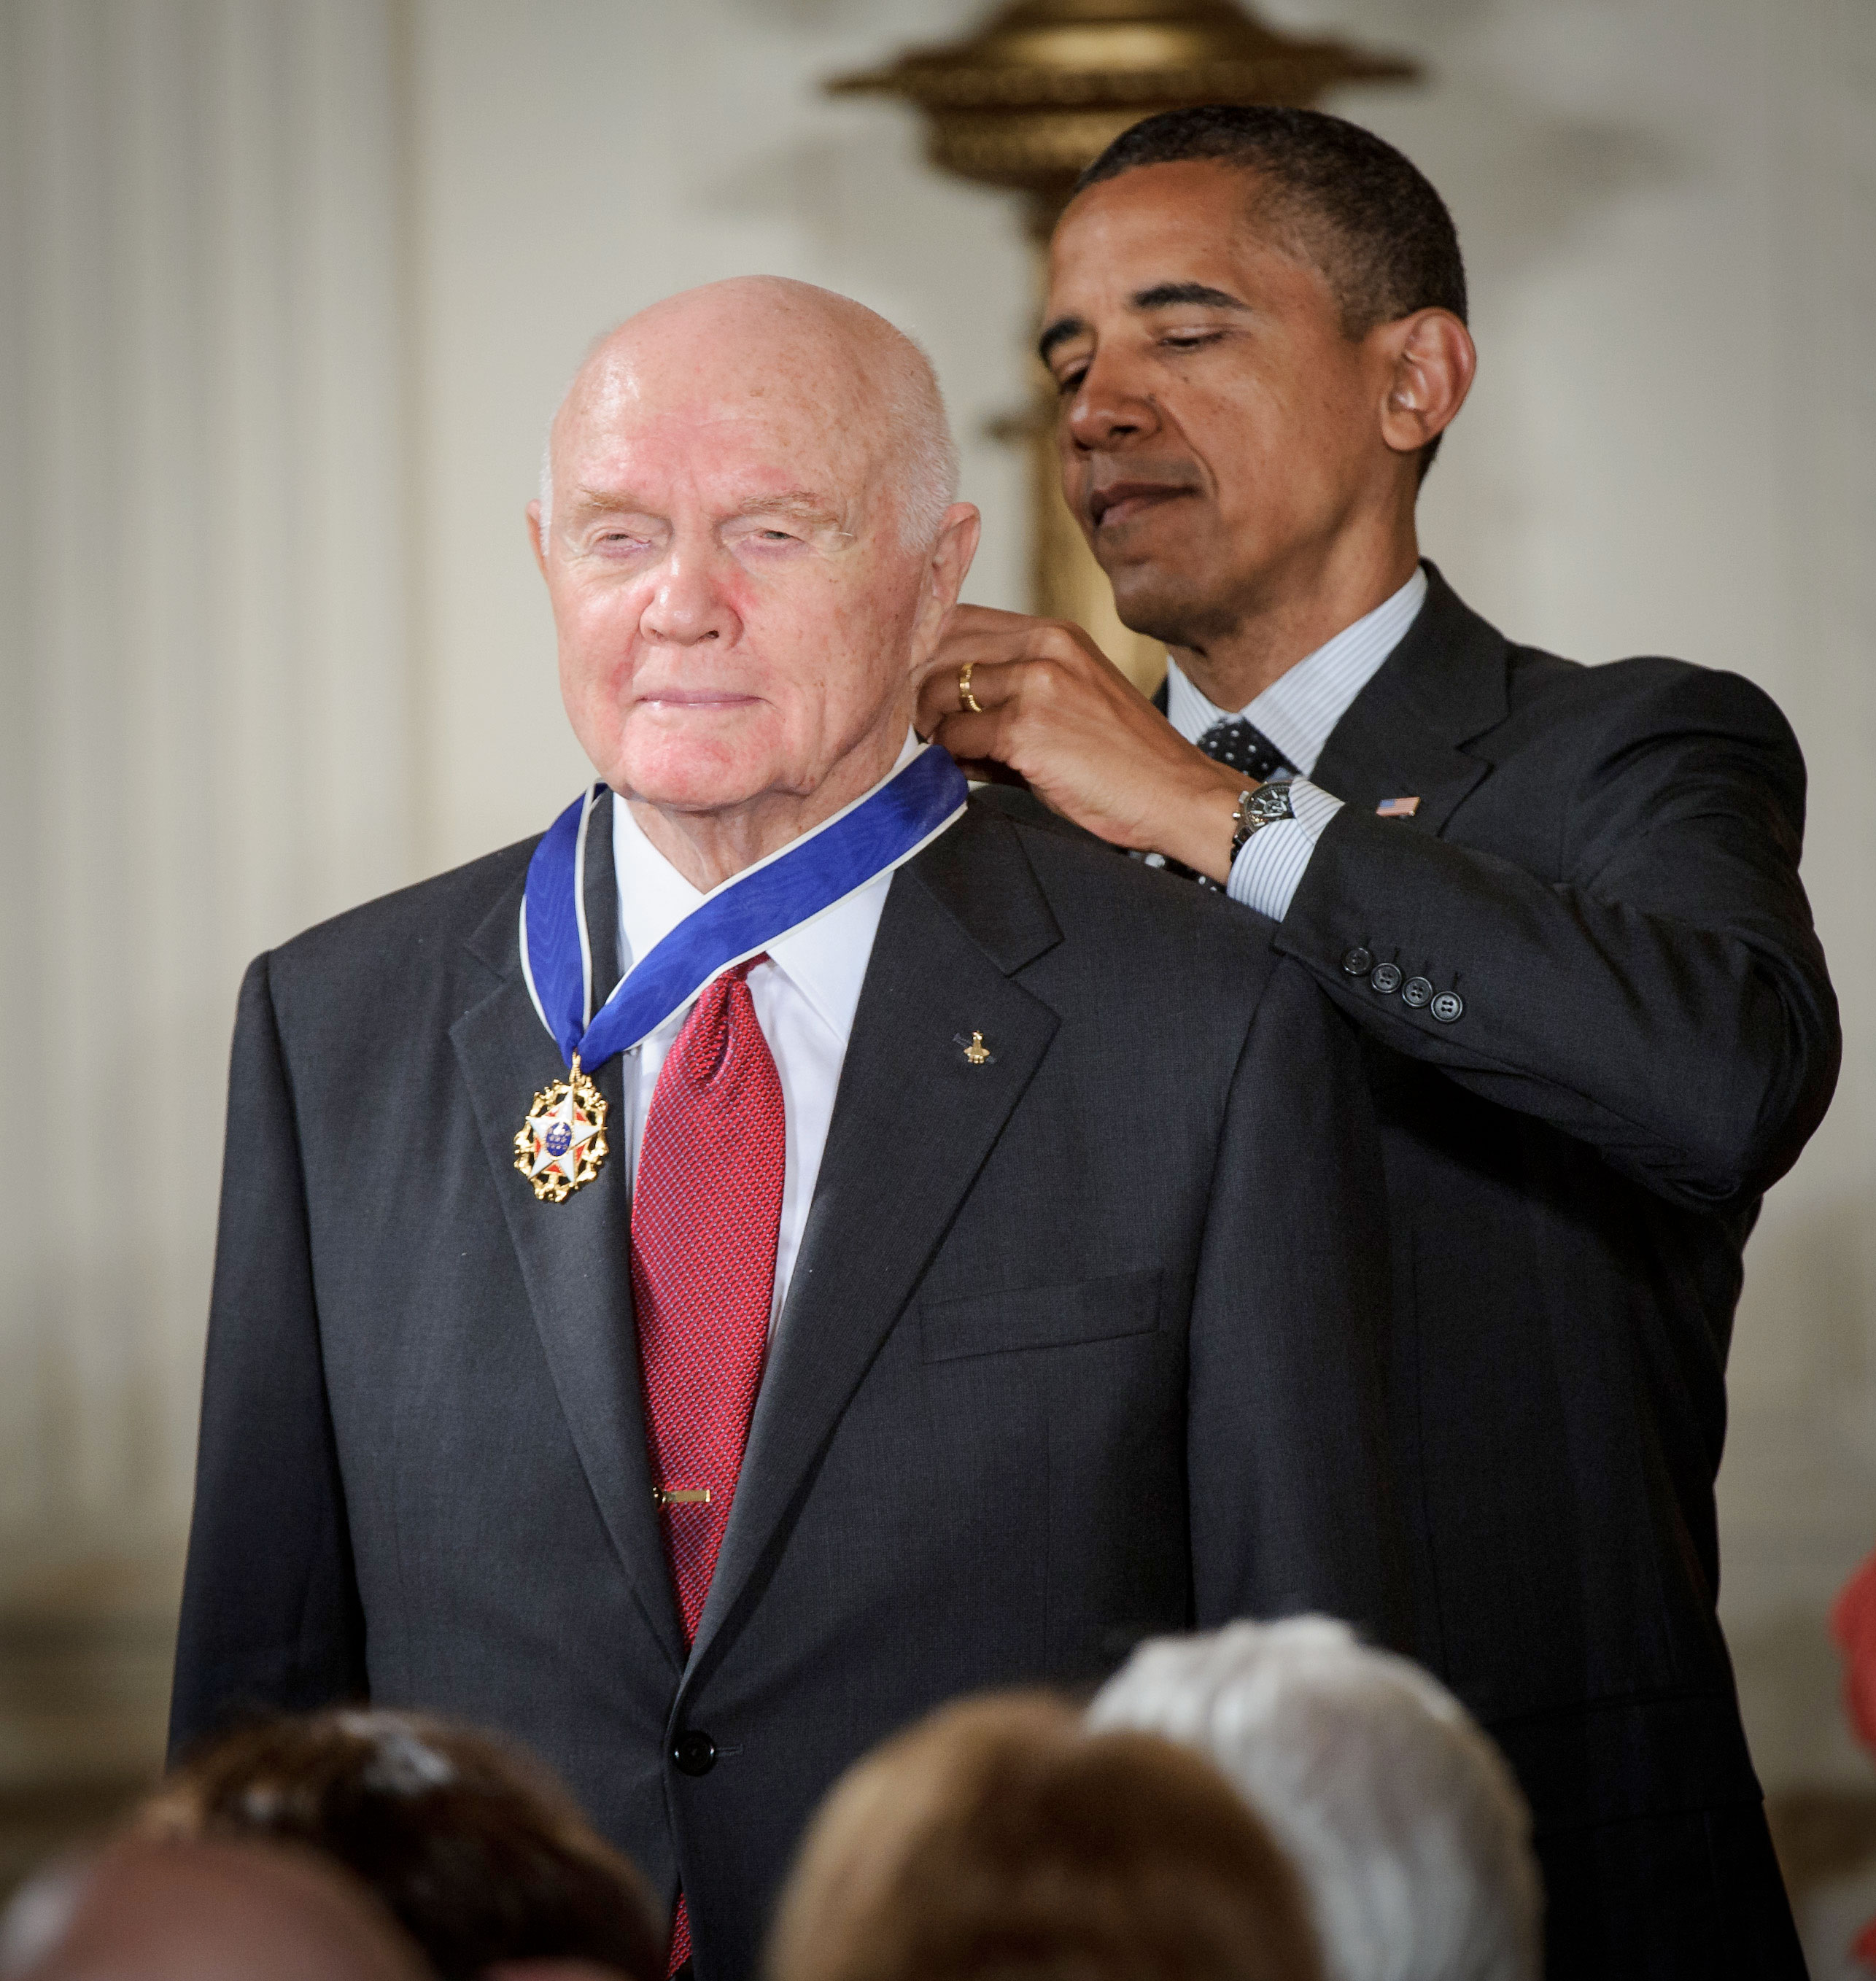 President Obama Awards John Glenn with Medal of Freedom